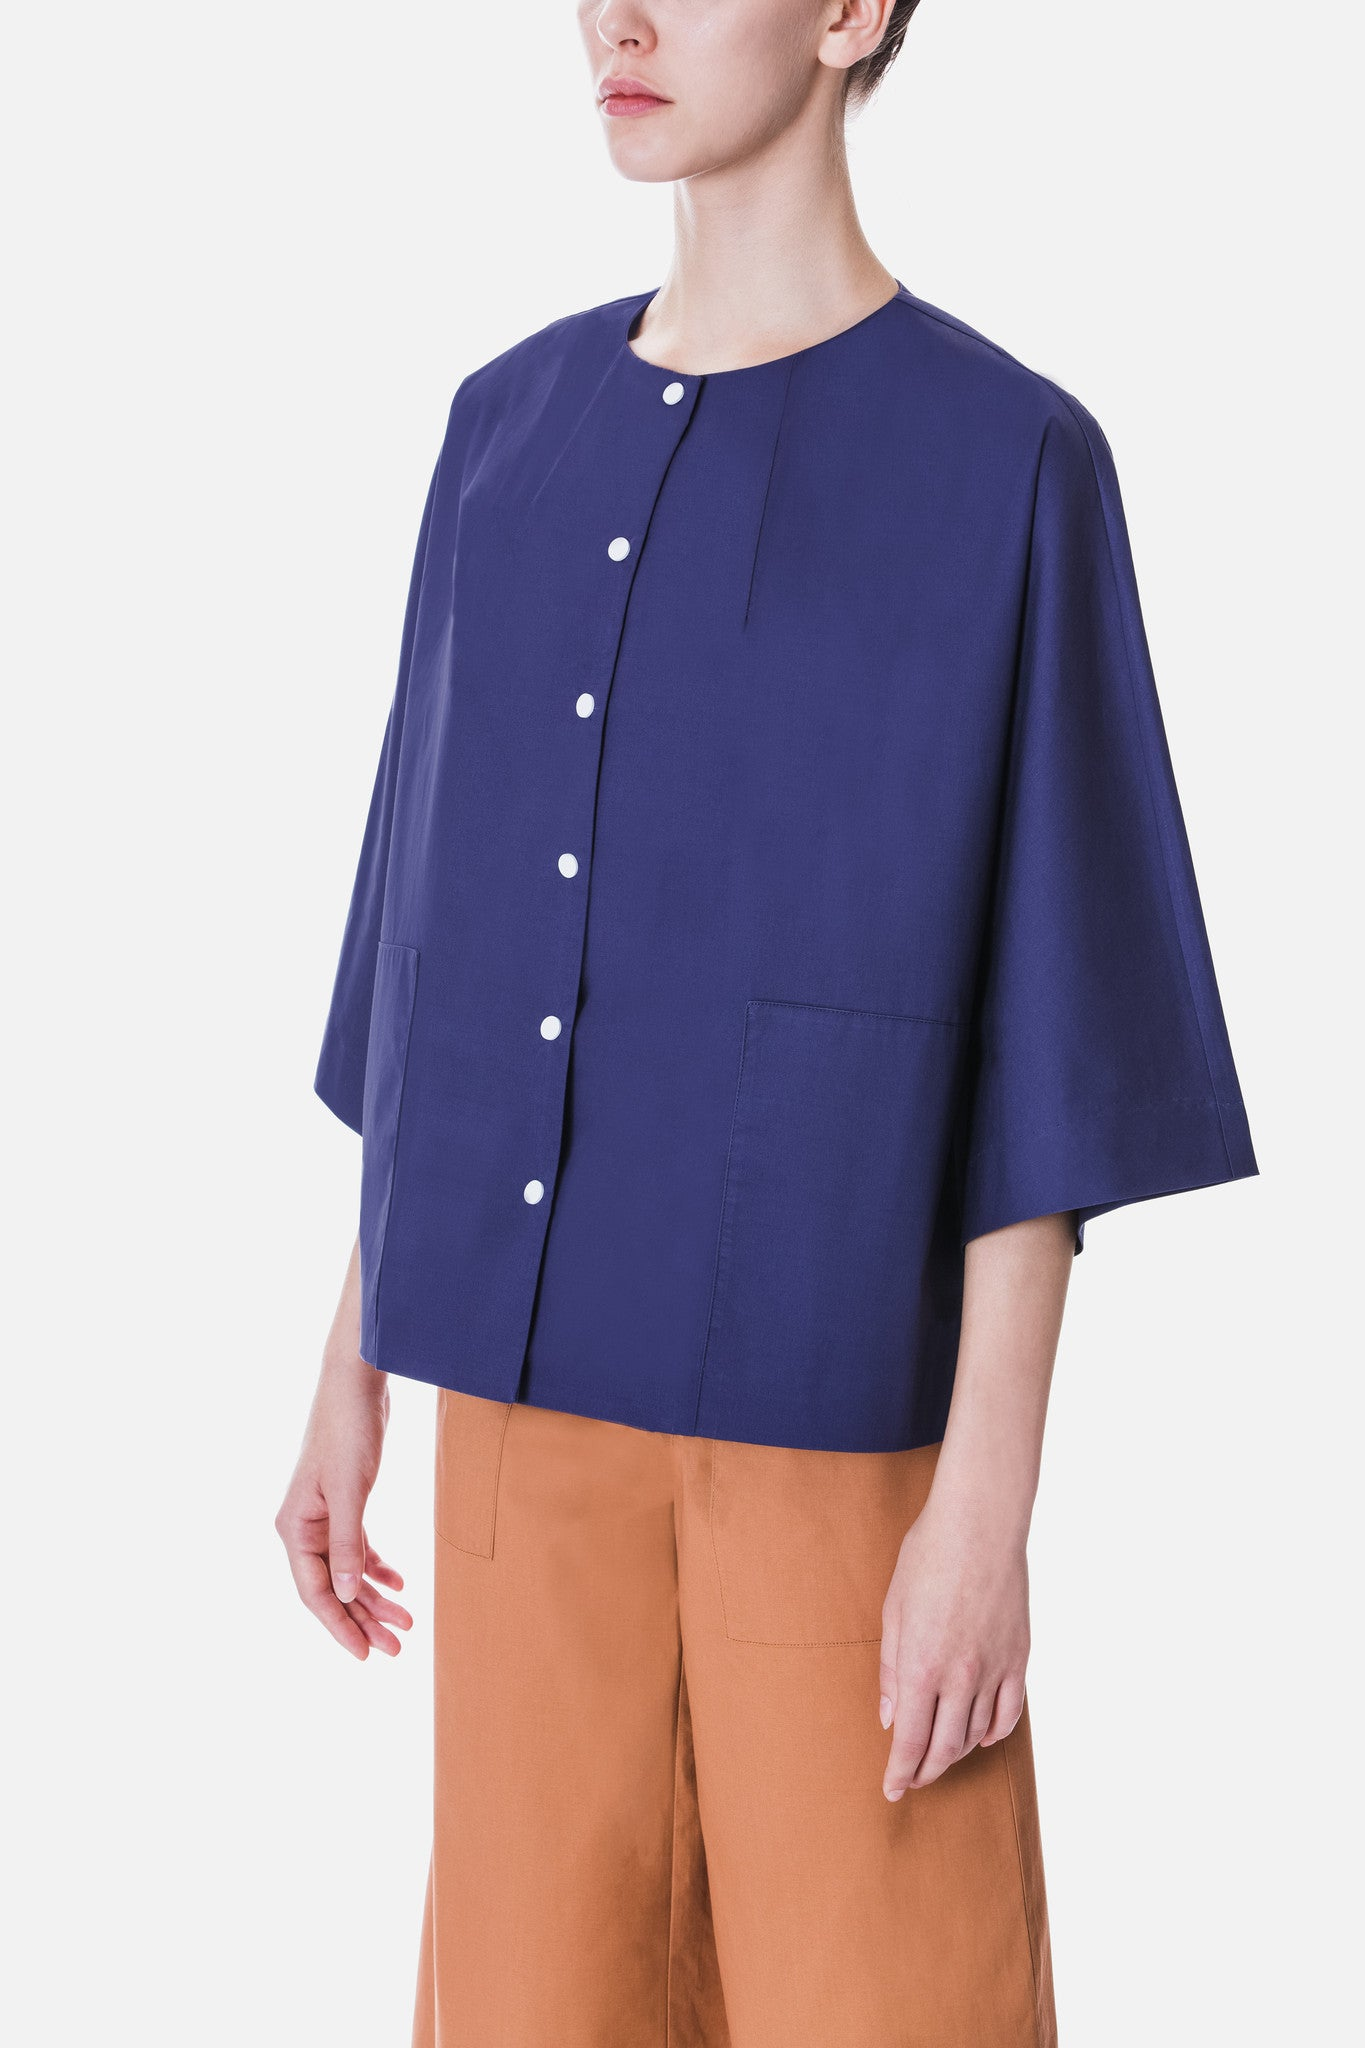 BOXY SHIRT WITH SNAP BUTTONS